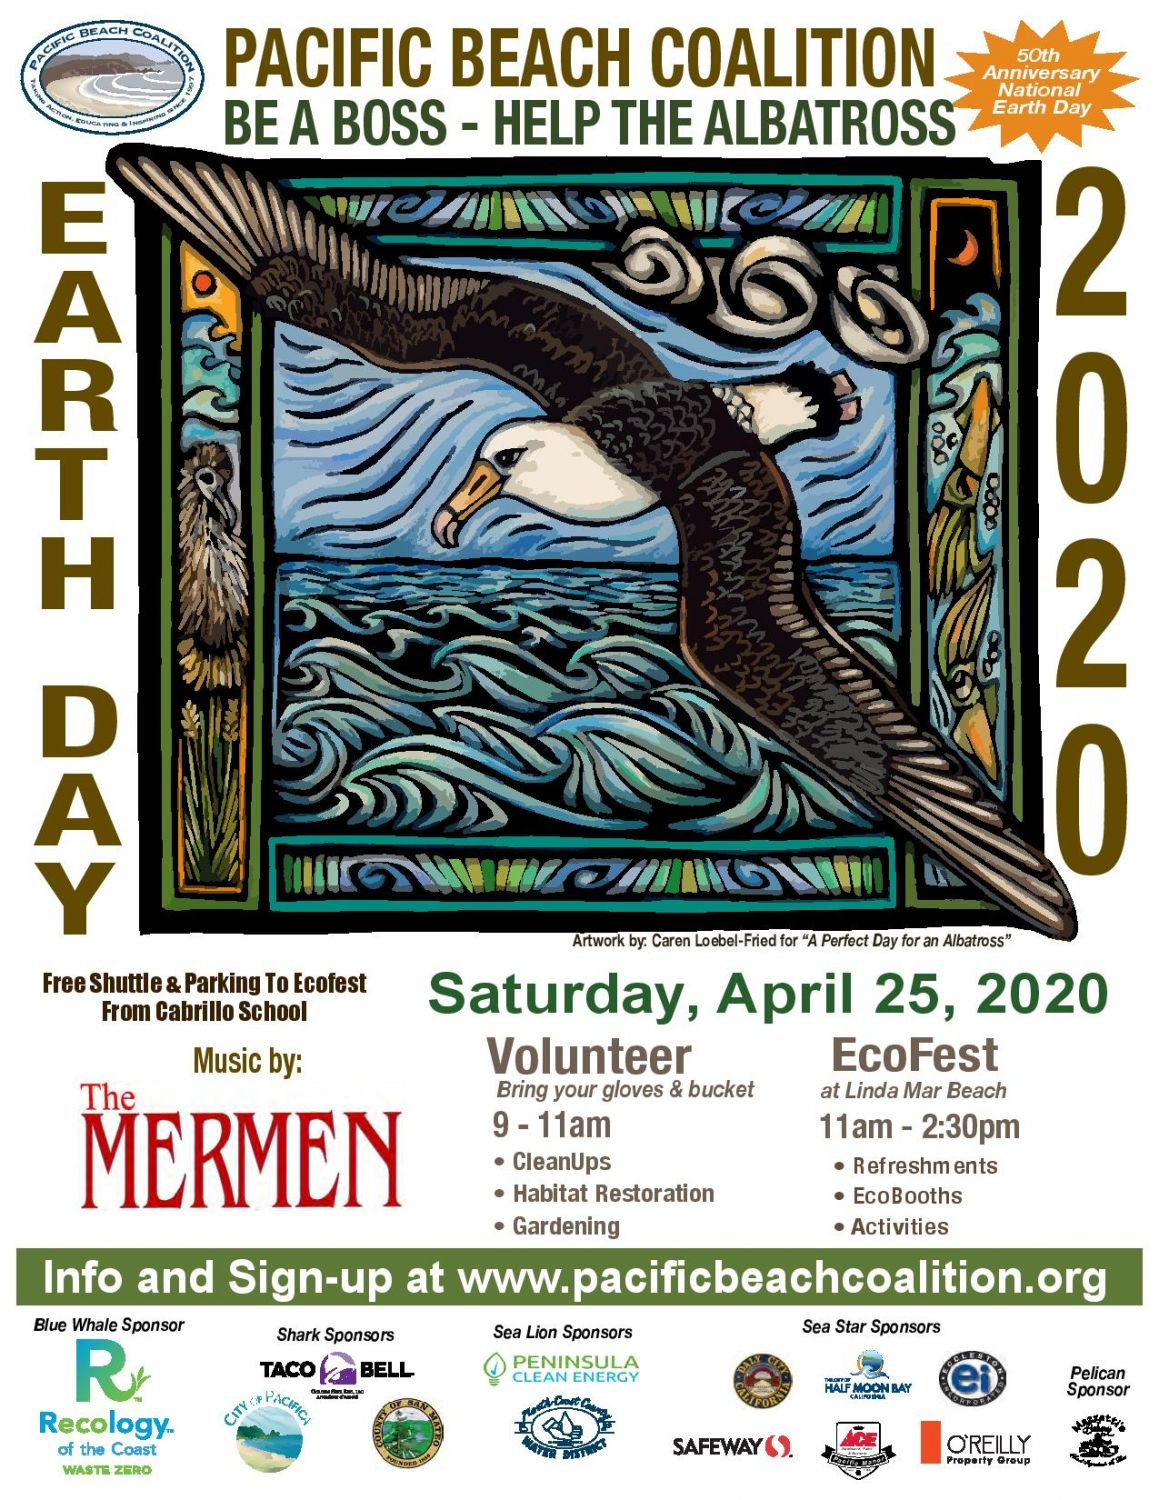 Be Part of Earth Day's 50th Anniversary